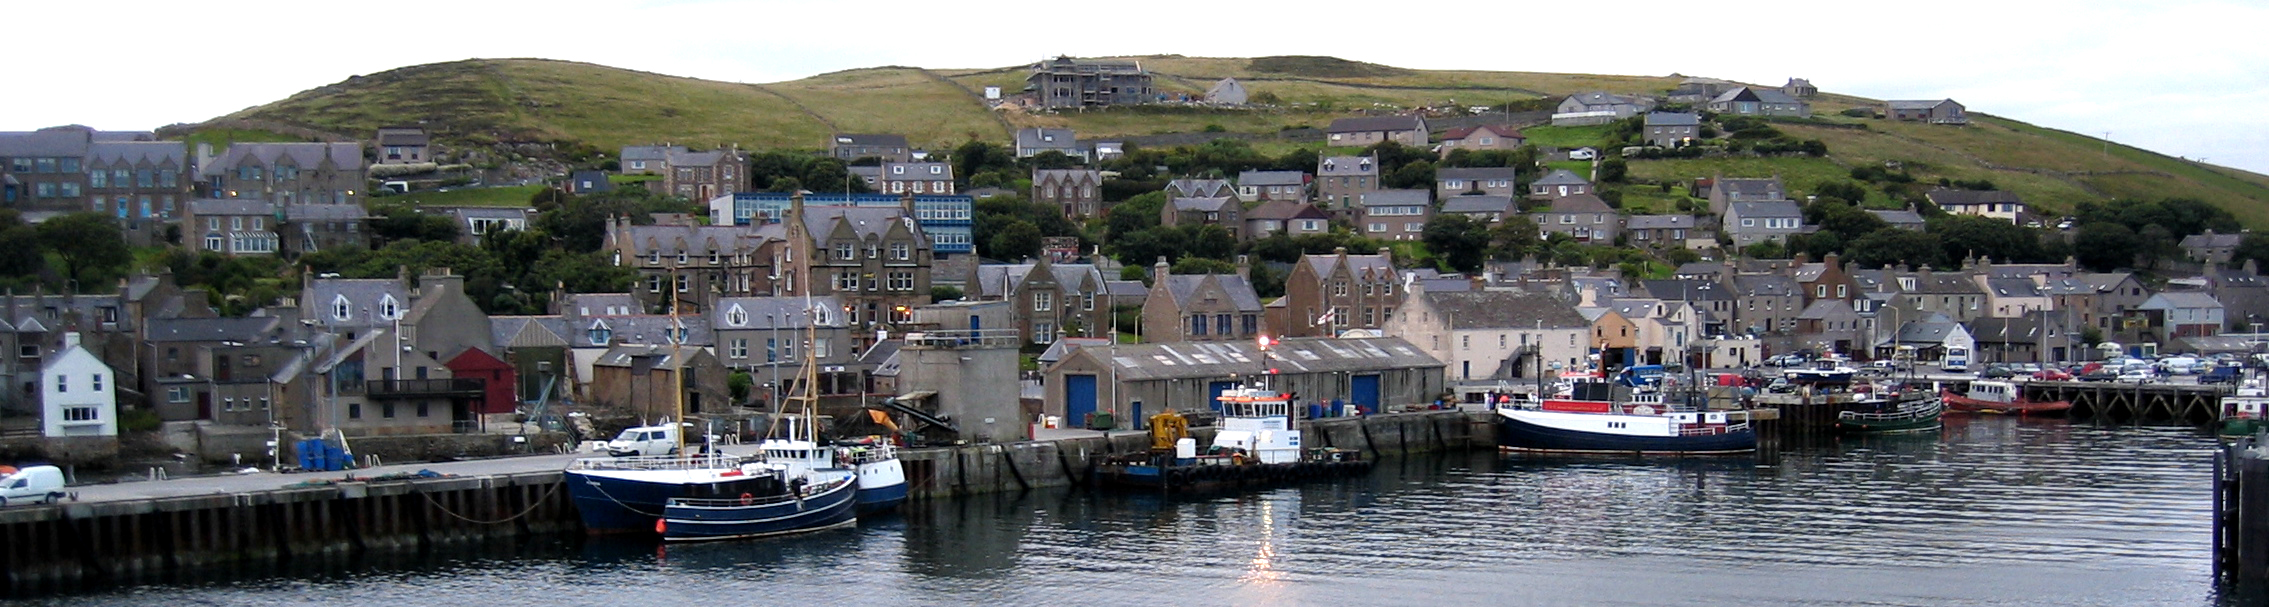 Stromness Harbour Orkney Scotland Wikipedia